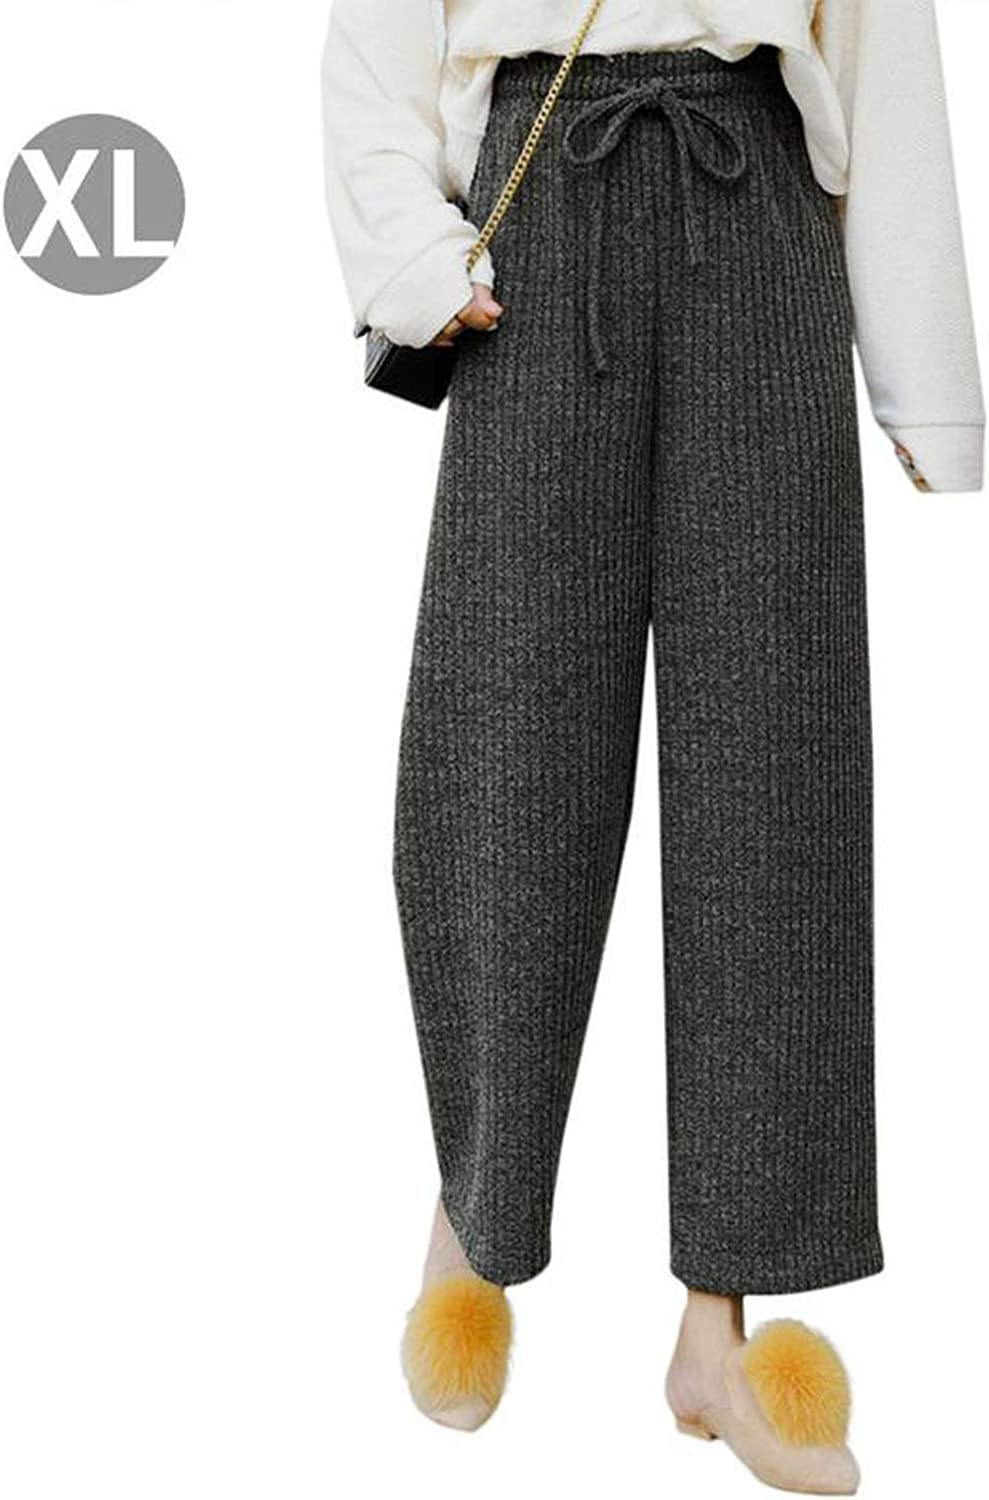 I'll NEVER BE HER New Knitted WideLeg Pants Autumn Winter Students Korean High Waist Drape Casual Straight Pants